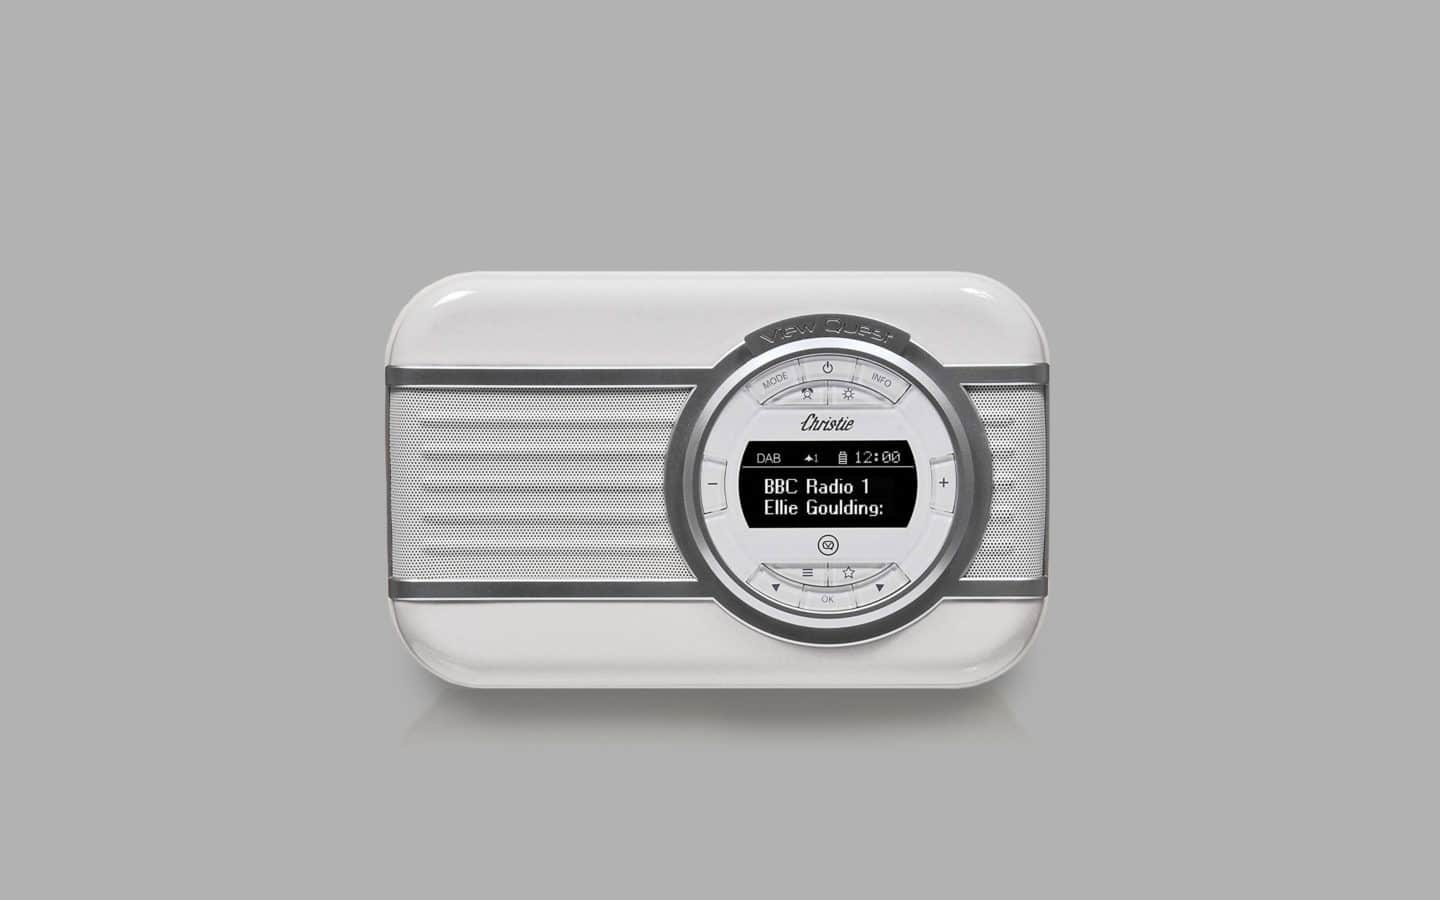 Best Rechargeable DAB Radio 2